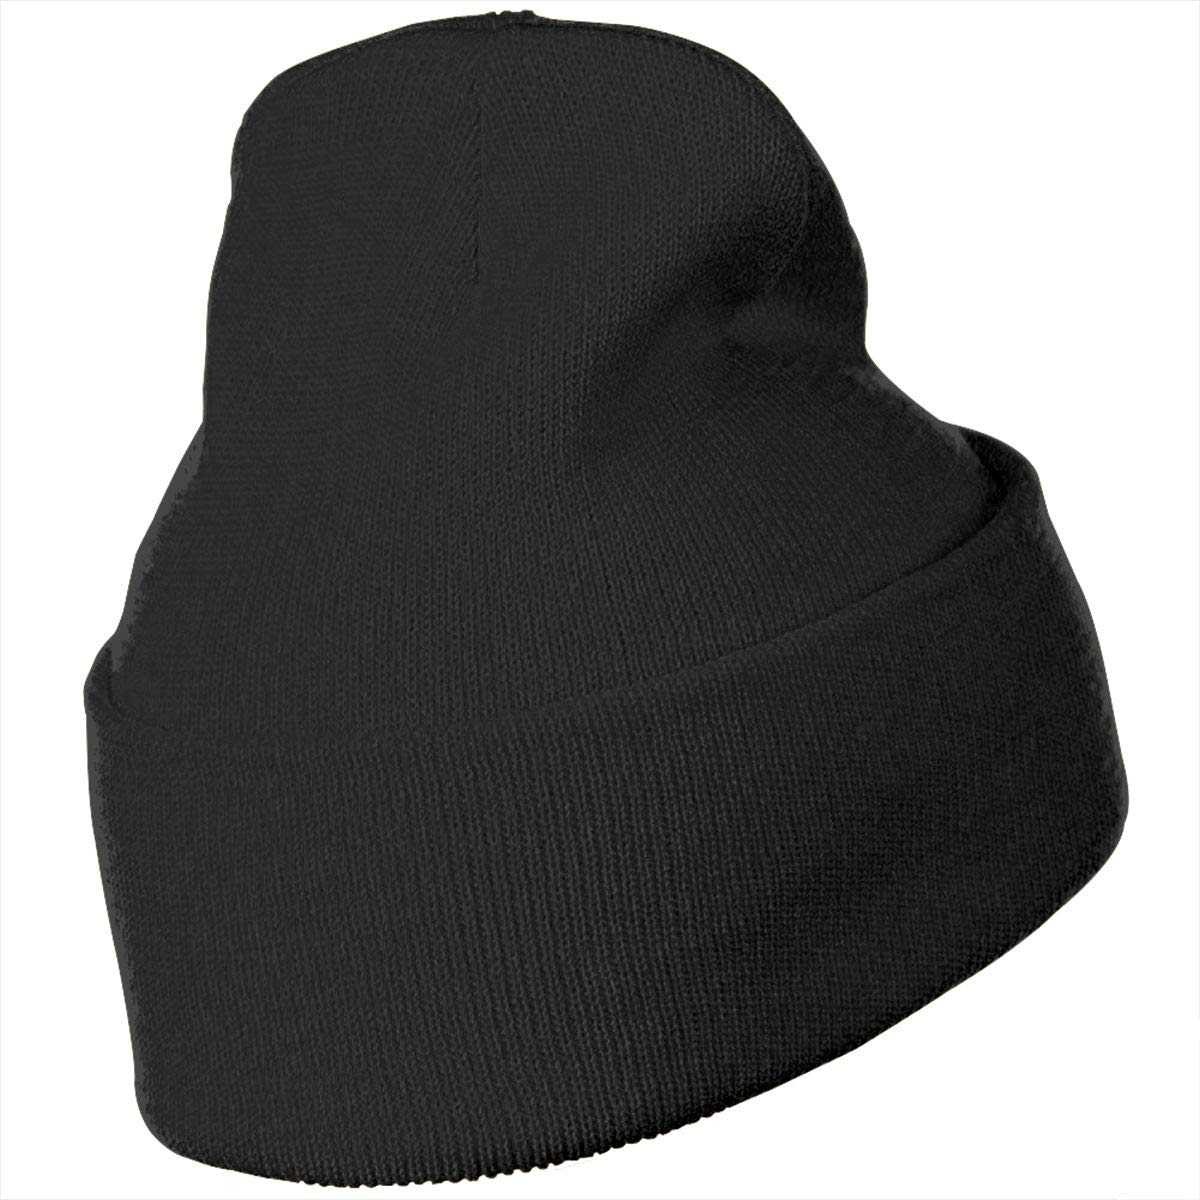 MACA Tanzania Unisex Slouch Beanie Hats Warm /& Stylish Winter Hats Black Thick